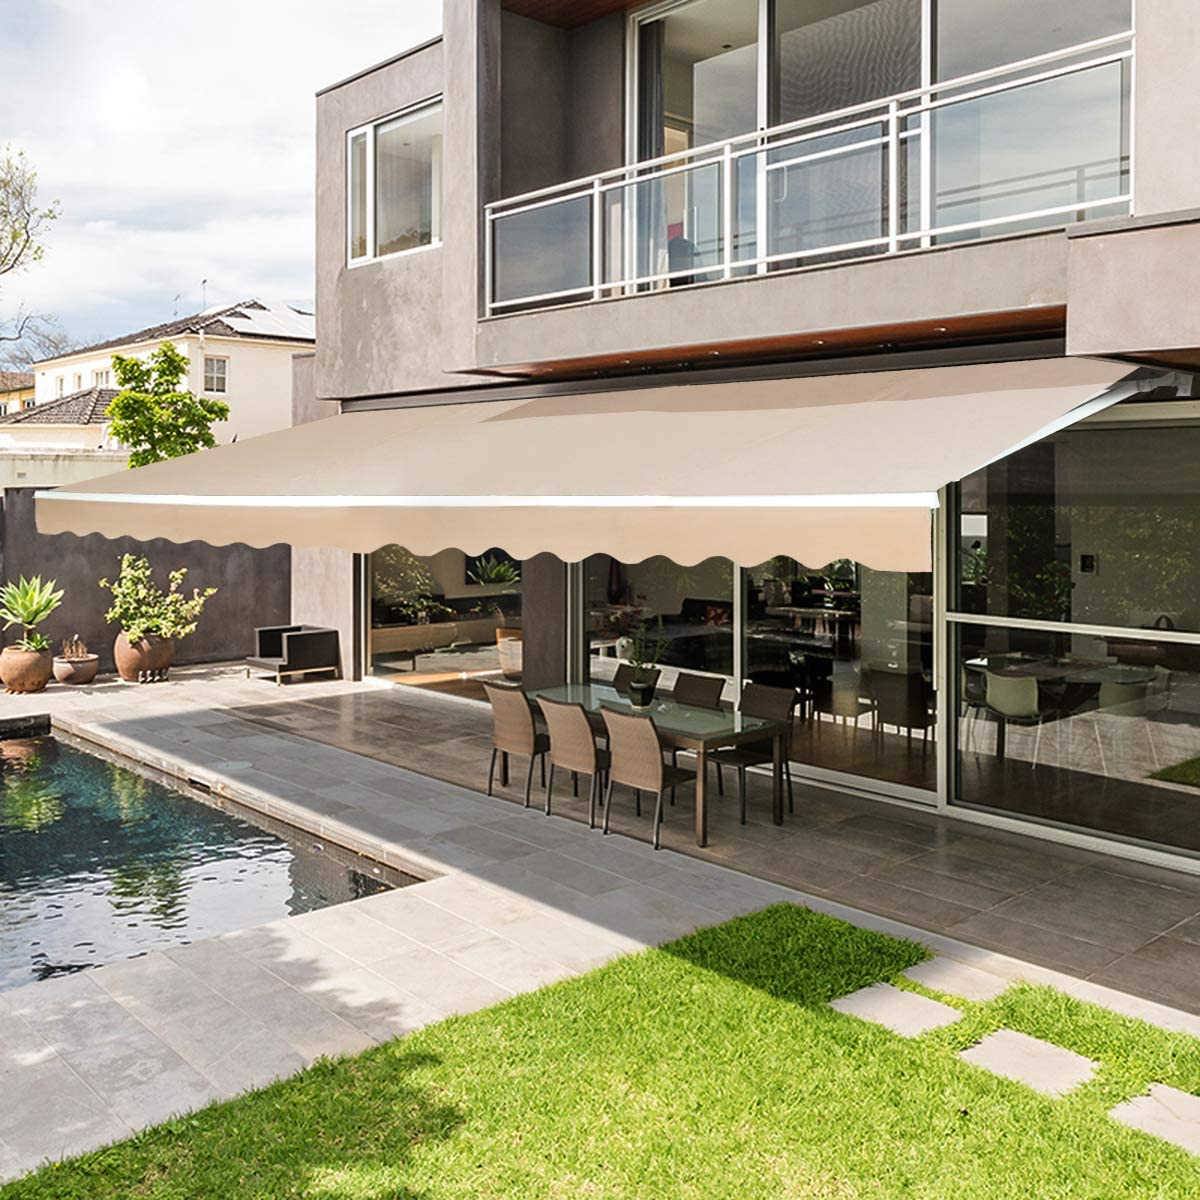 72 Reference Of Manual Patio Retractable Screen In 2020 Manual Guide